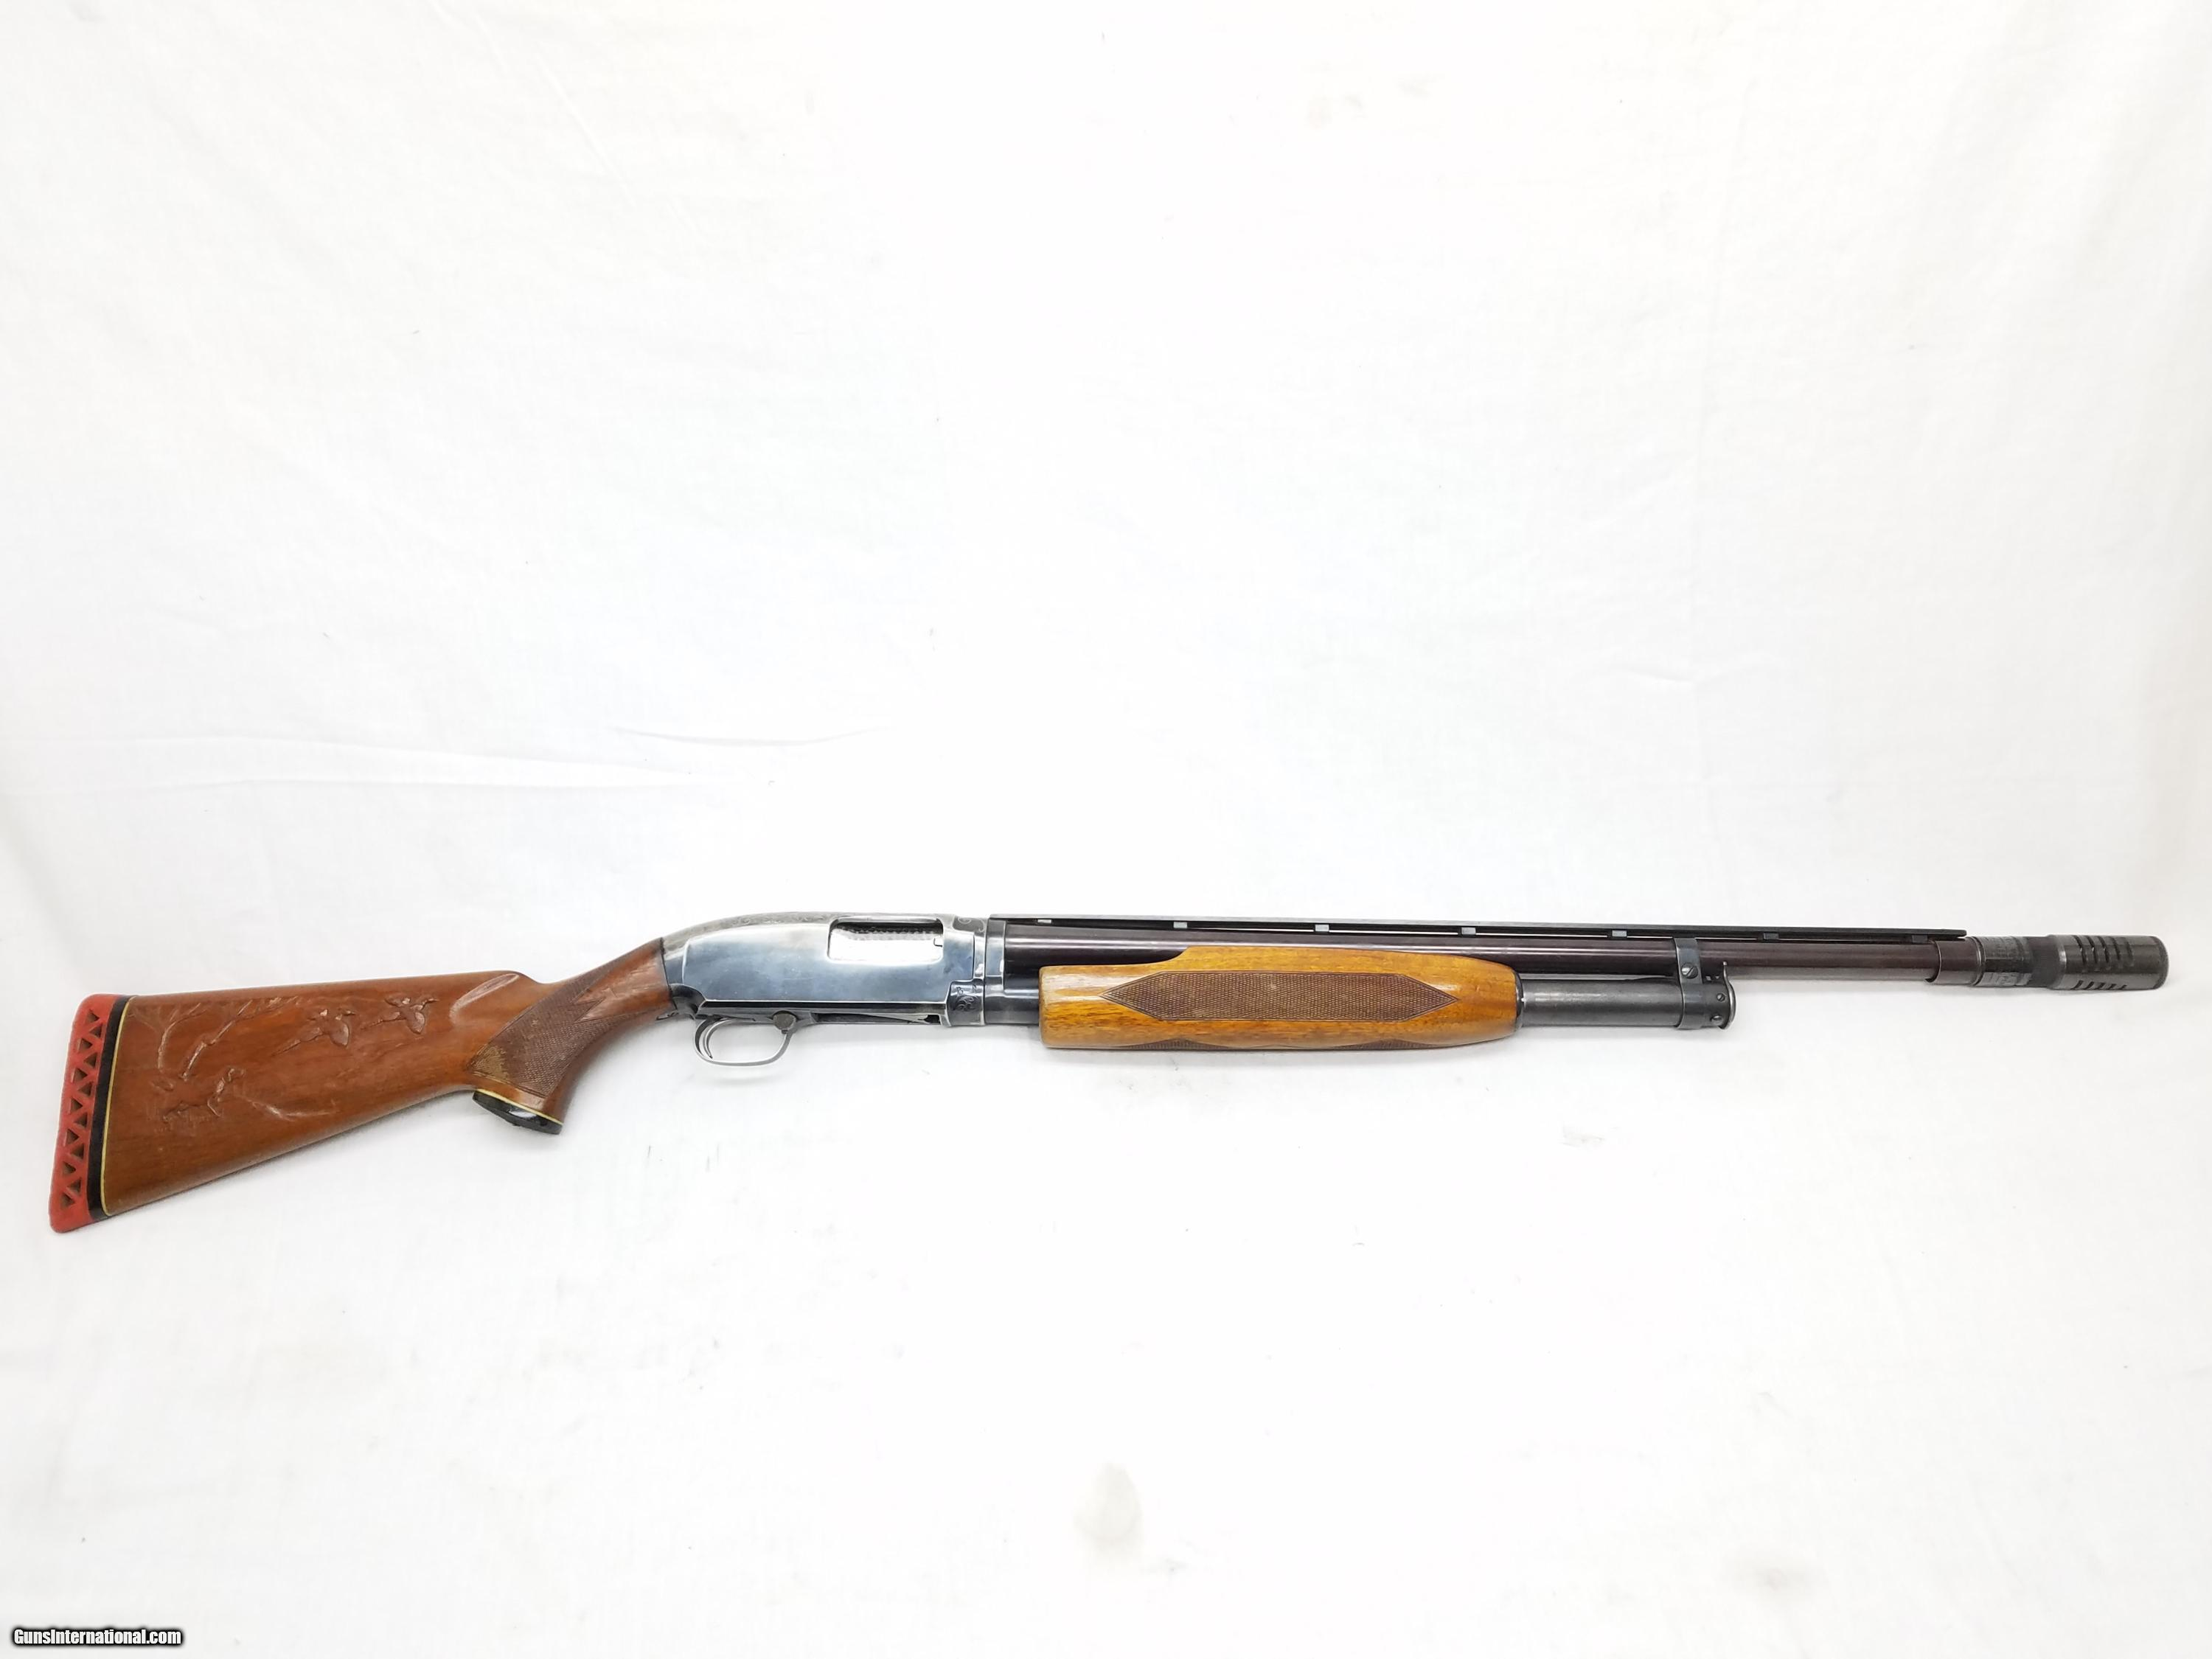 Single pump model 12 shotgun 12 ga by winchester repeating arms co stk a170